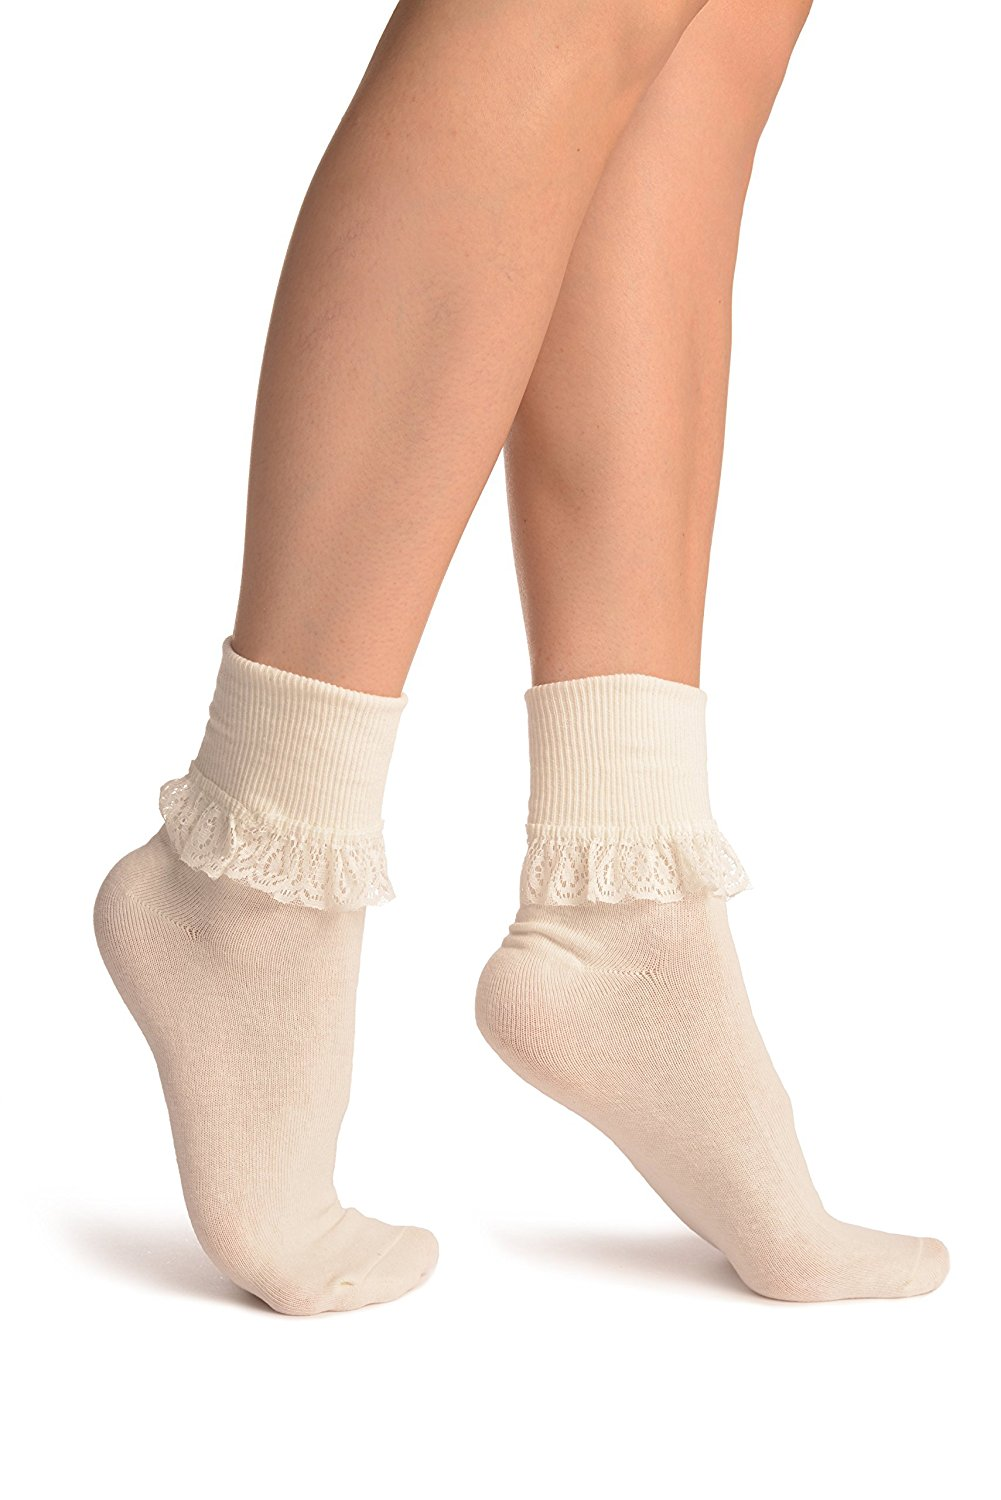 1c54e77b4 Get Quotations · Cream With Cream Lace Trim Ankle High Socks - Socks